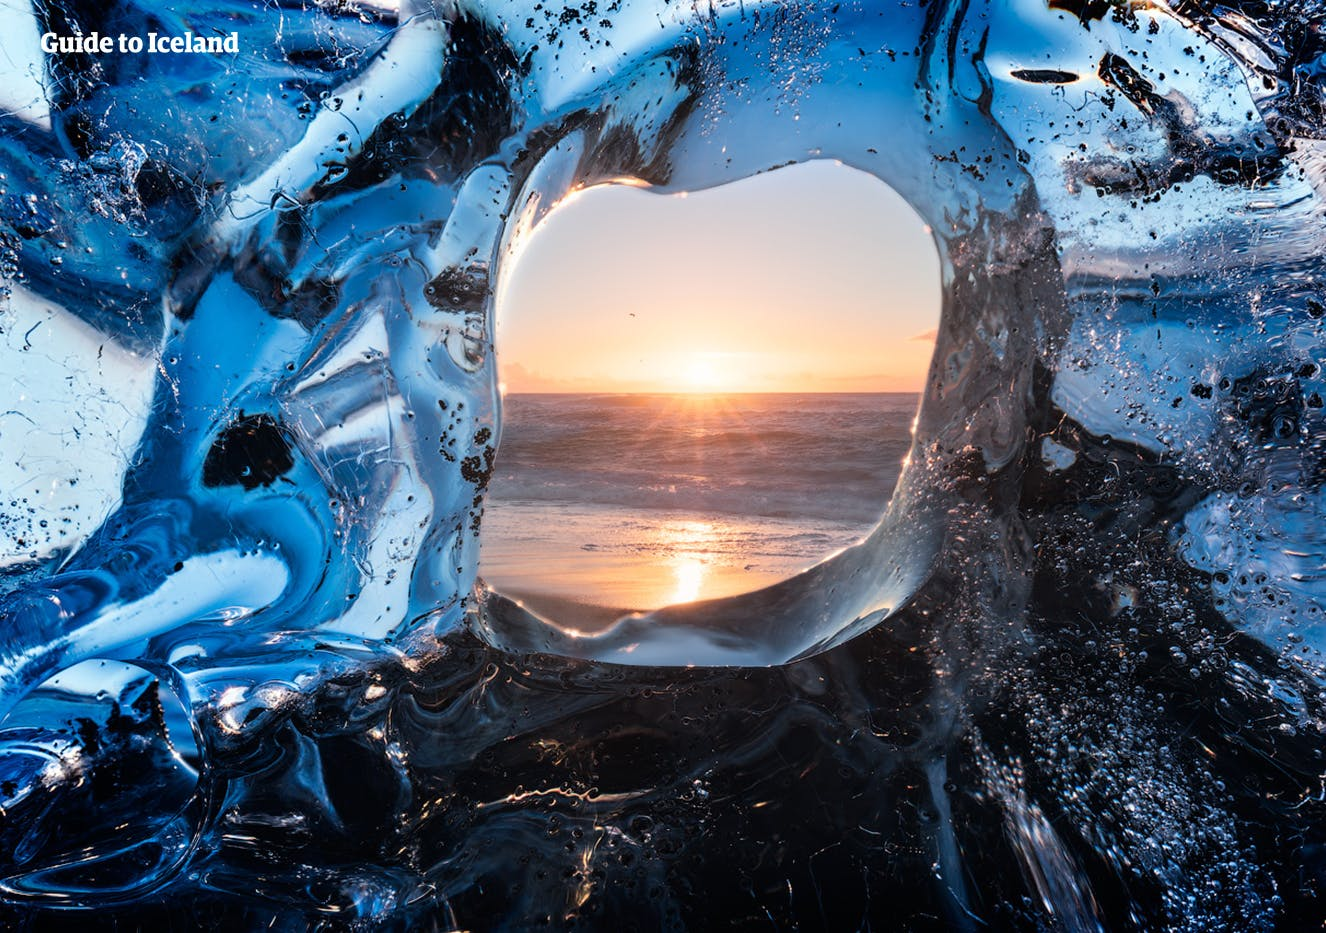 Looking through an iceberg on Diamond Beach near the stunning Jökulsárlón glacier lagoon.